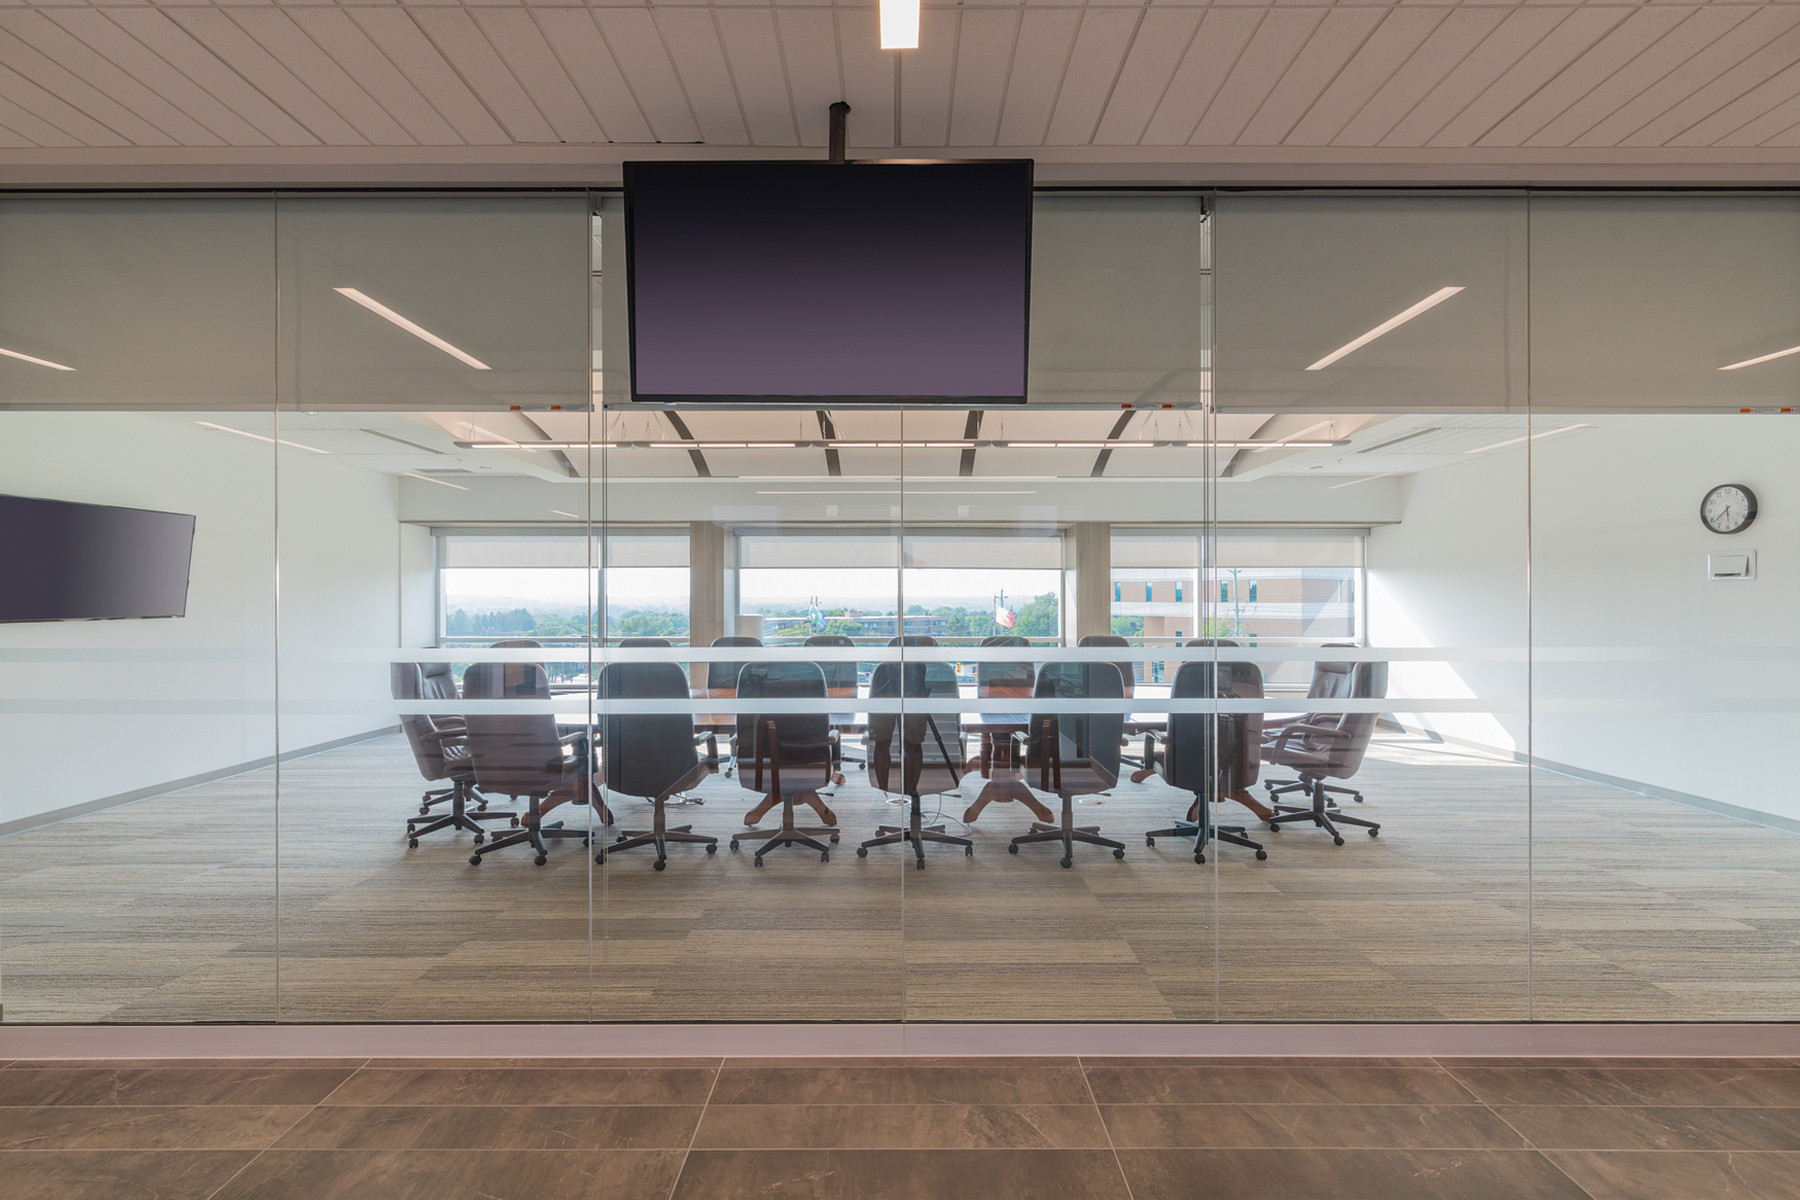 Large glazed meeting room with exterior views